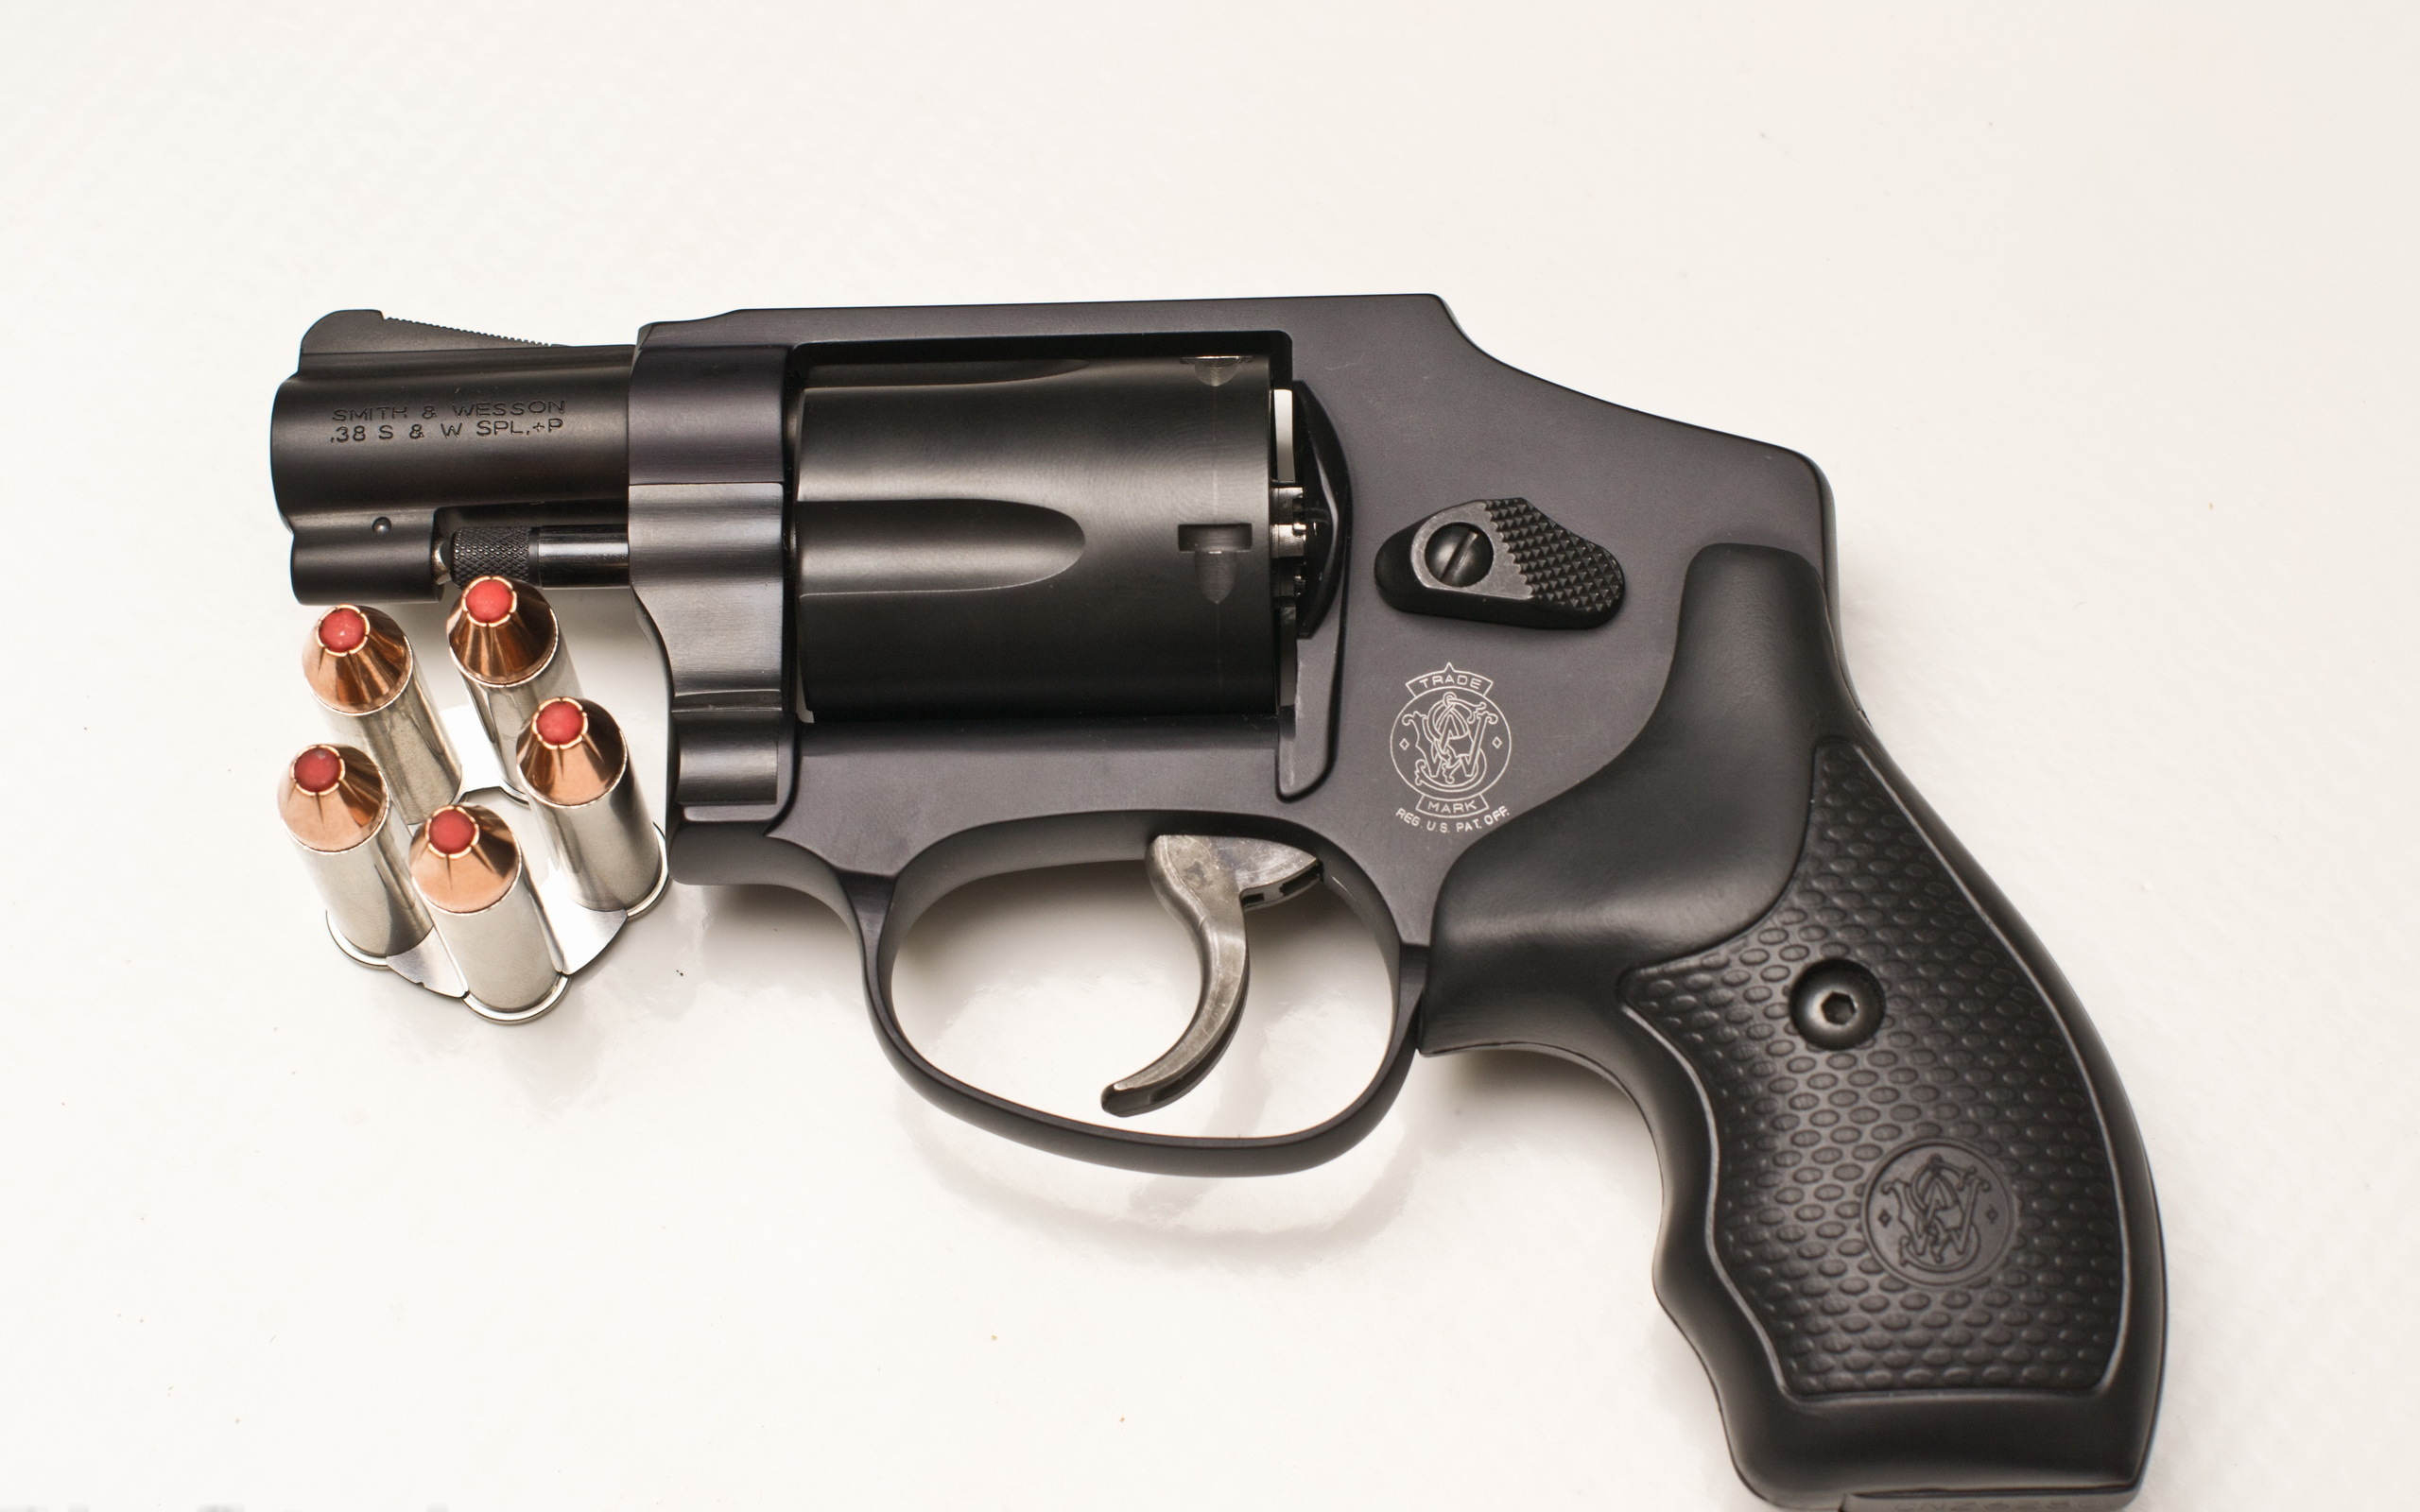 2 smith wesson 38 special revolver hd wallpapers background 2 smith wesson 38 special revolver hd wallpapers background images wallpaper abyss thecheapjerseys Image collections